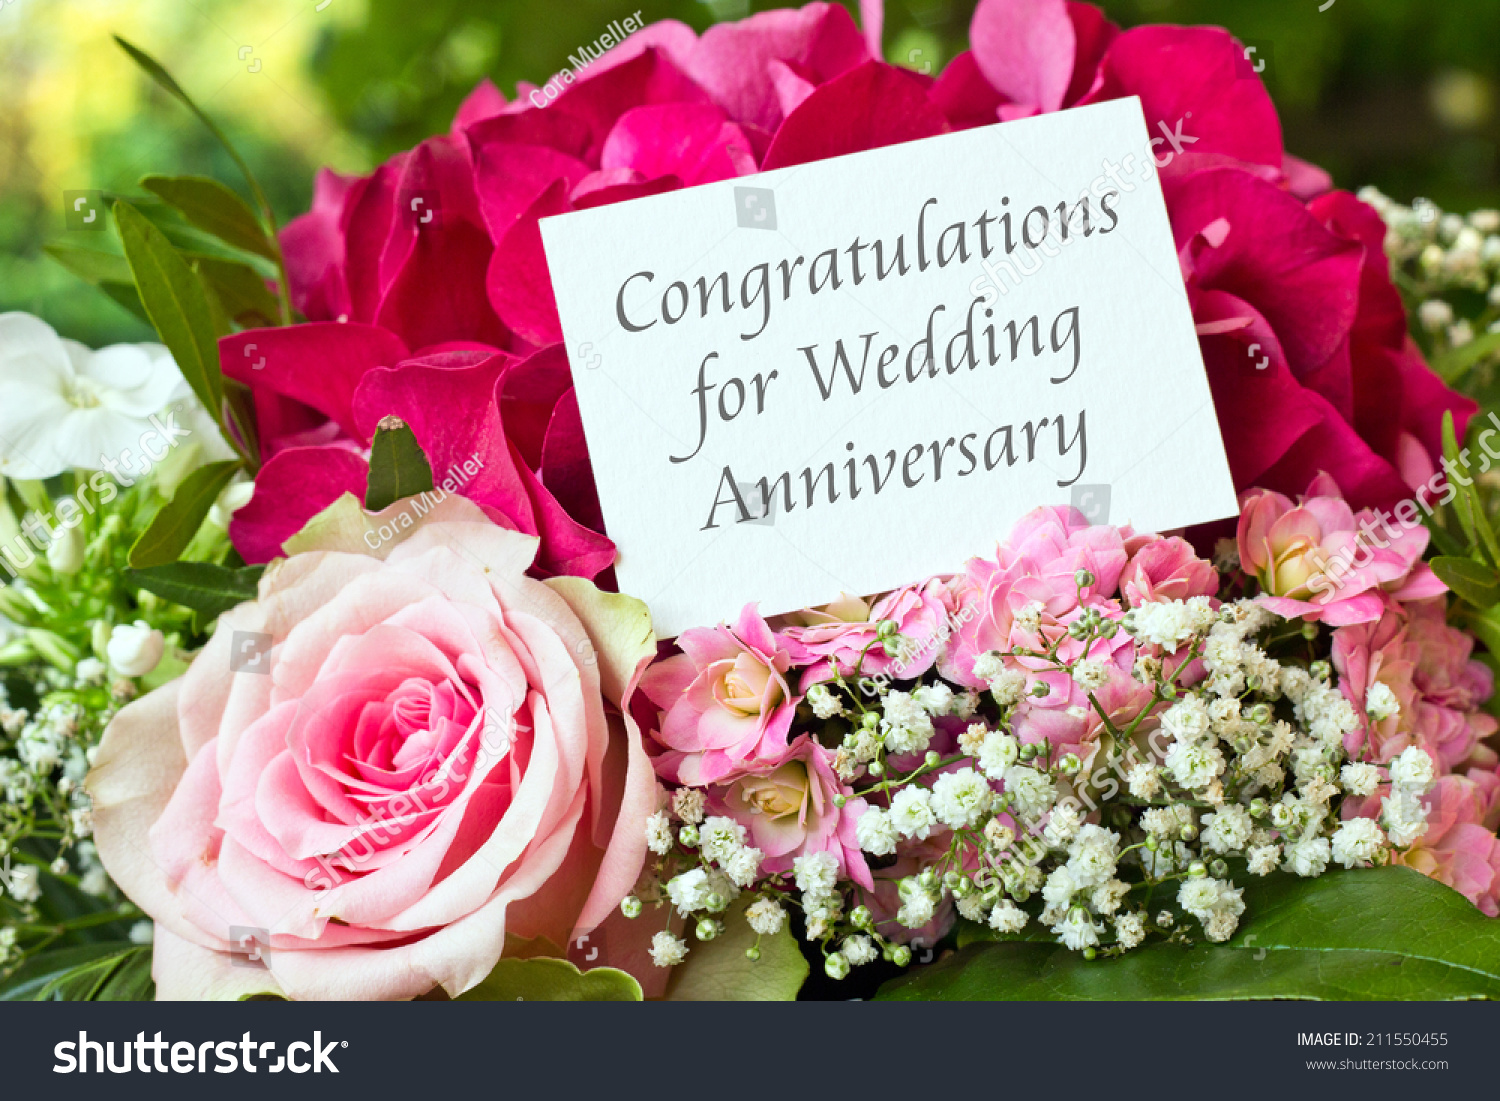 Image Result For Wedding Wishes German